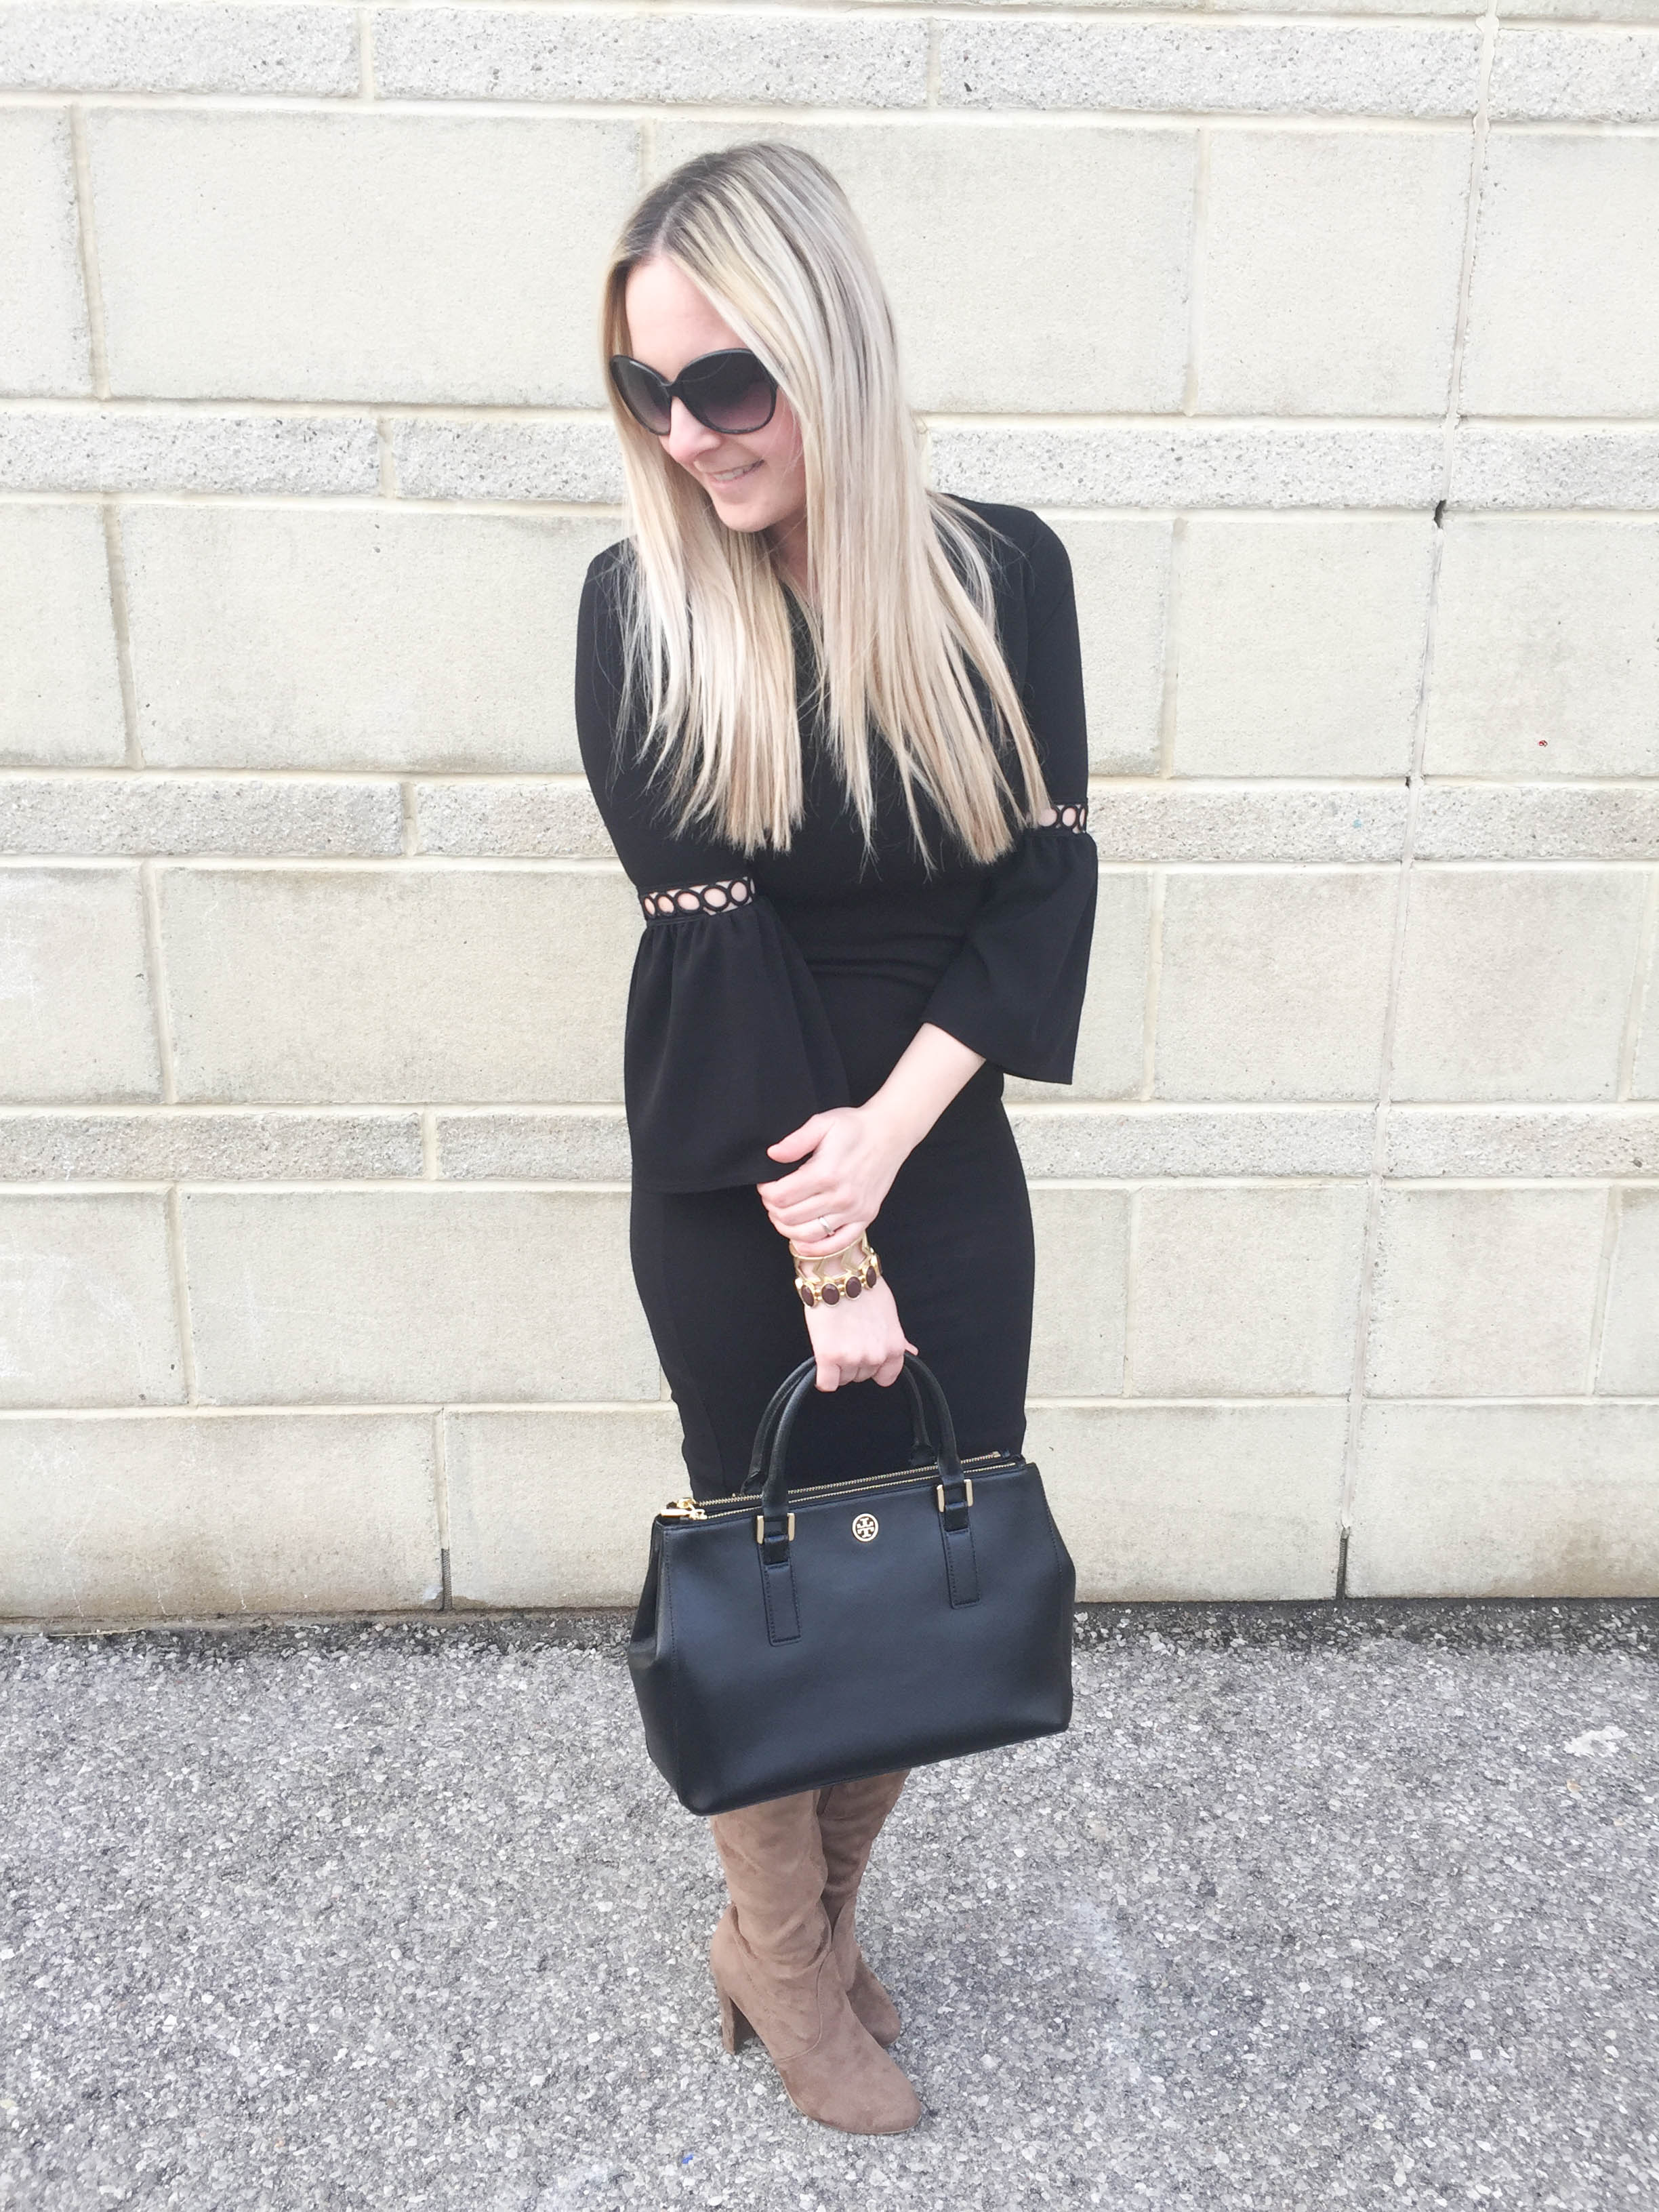 Pink Blush Black Dress on Livin' Life with Style